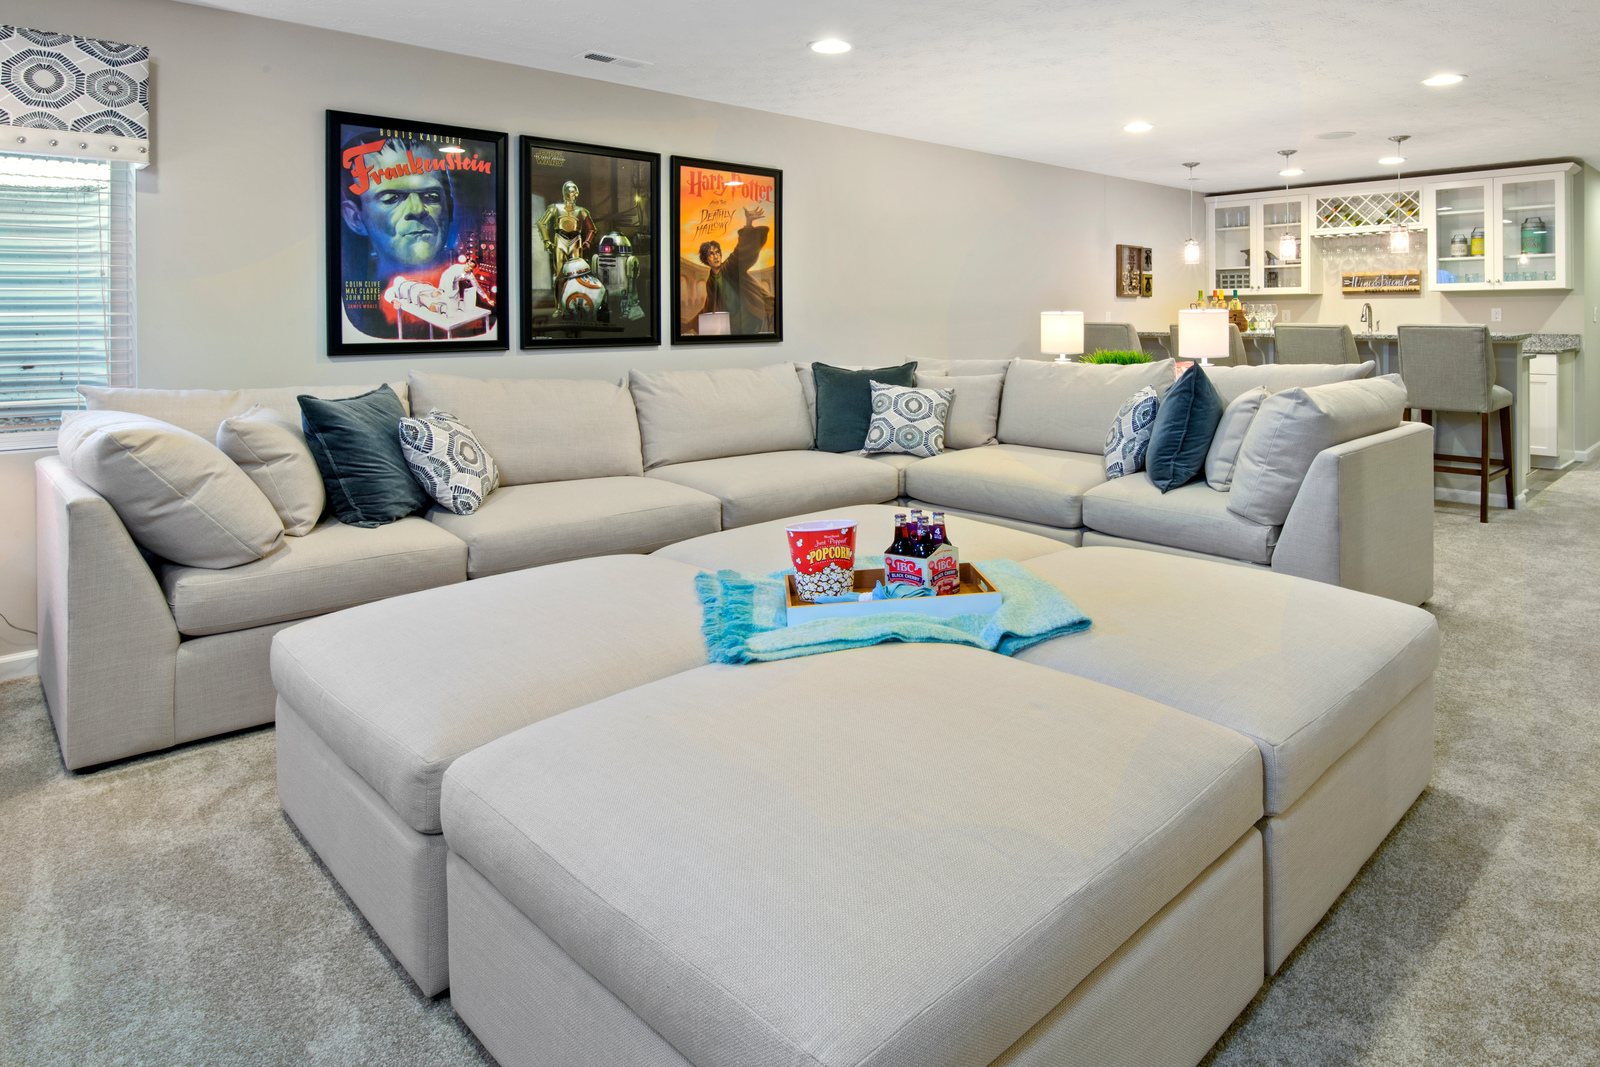 New Homes for sale at Oak Brooke in Sugarcreek Township, OH within ...